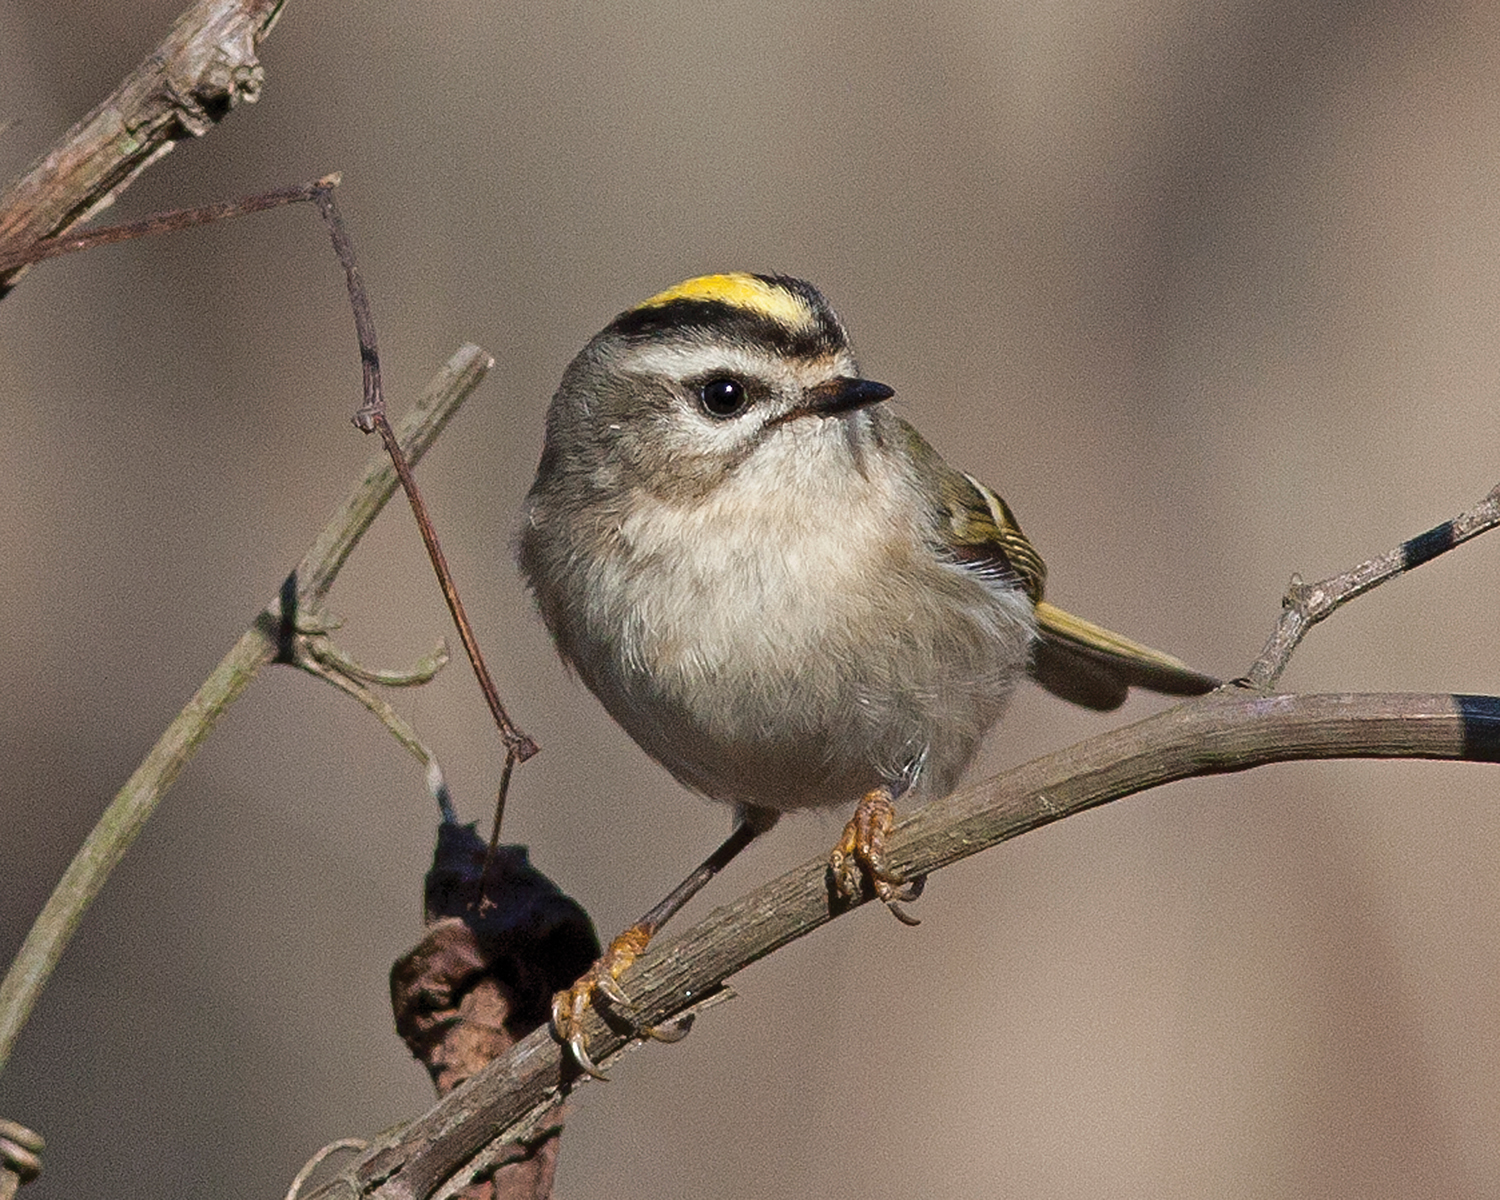 Golden-crowned kinglet; taken at the Governor Mike Huckabee Nature Center, Pine Bluff.